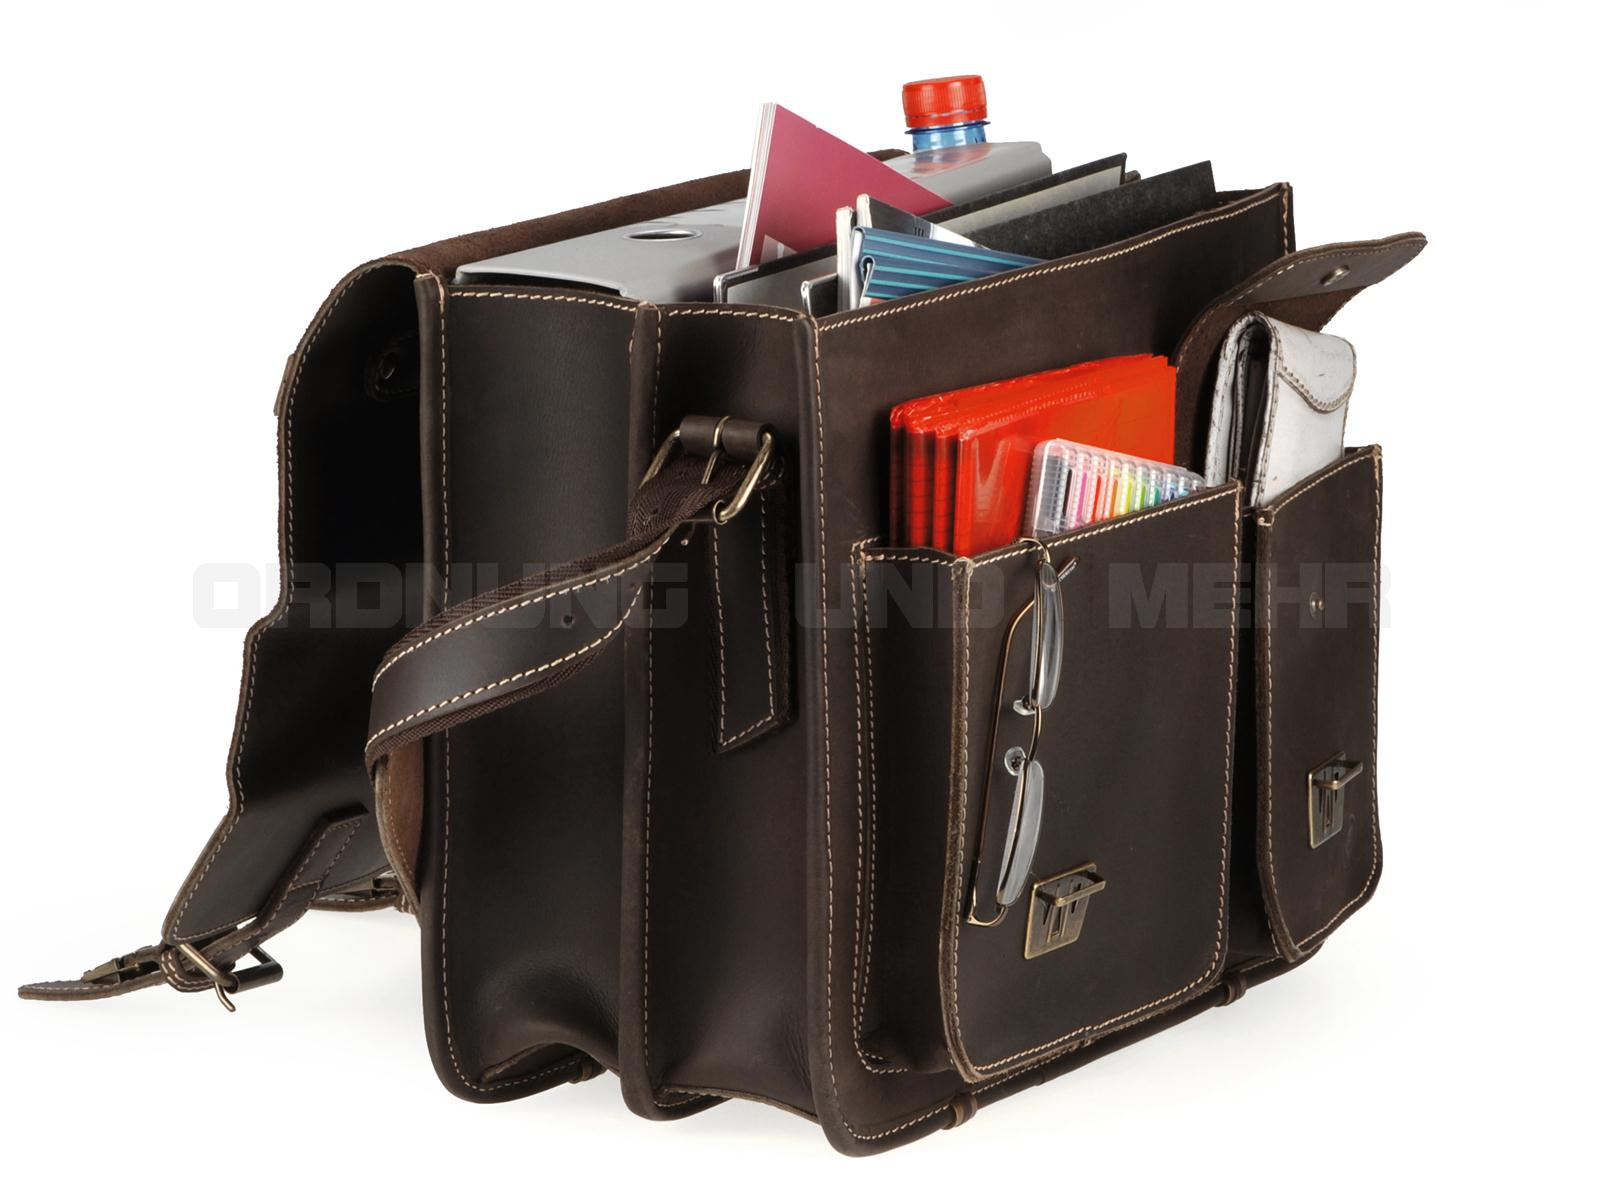 Greenburry Buffalo XL Lehrertasche Modell 1028 in tabak